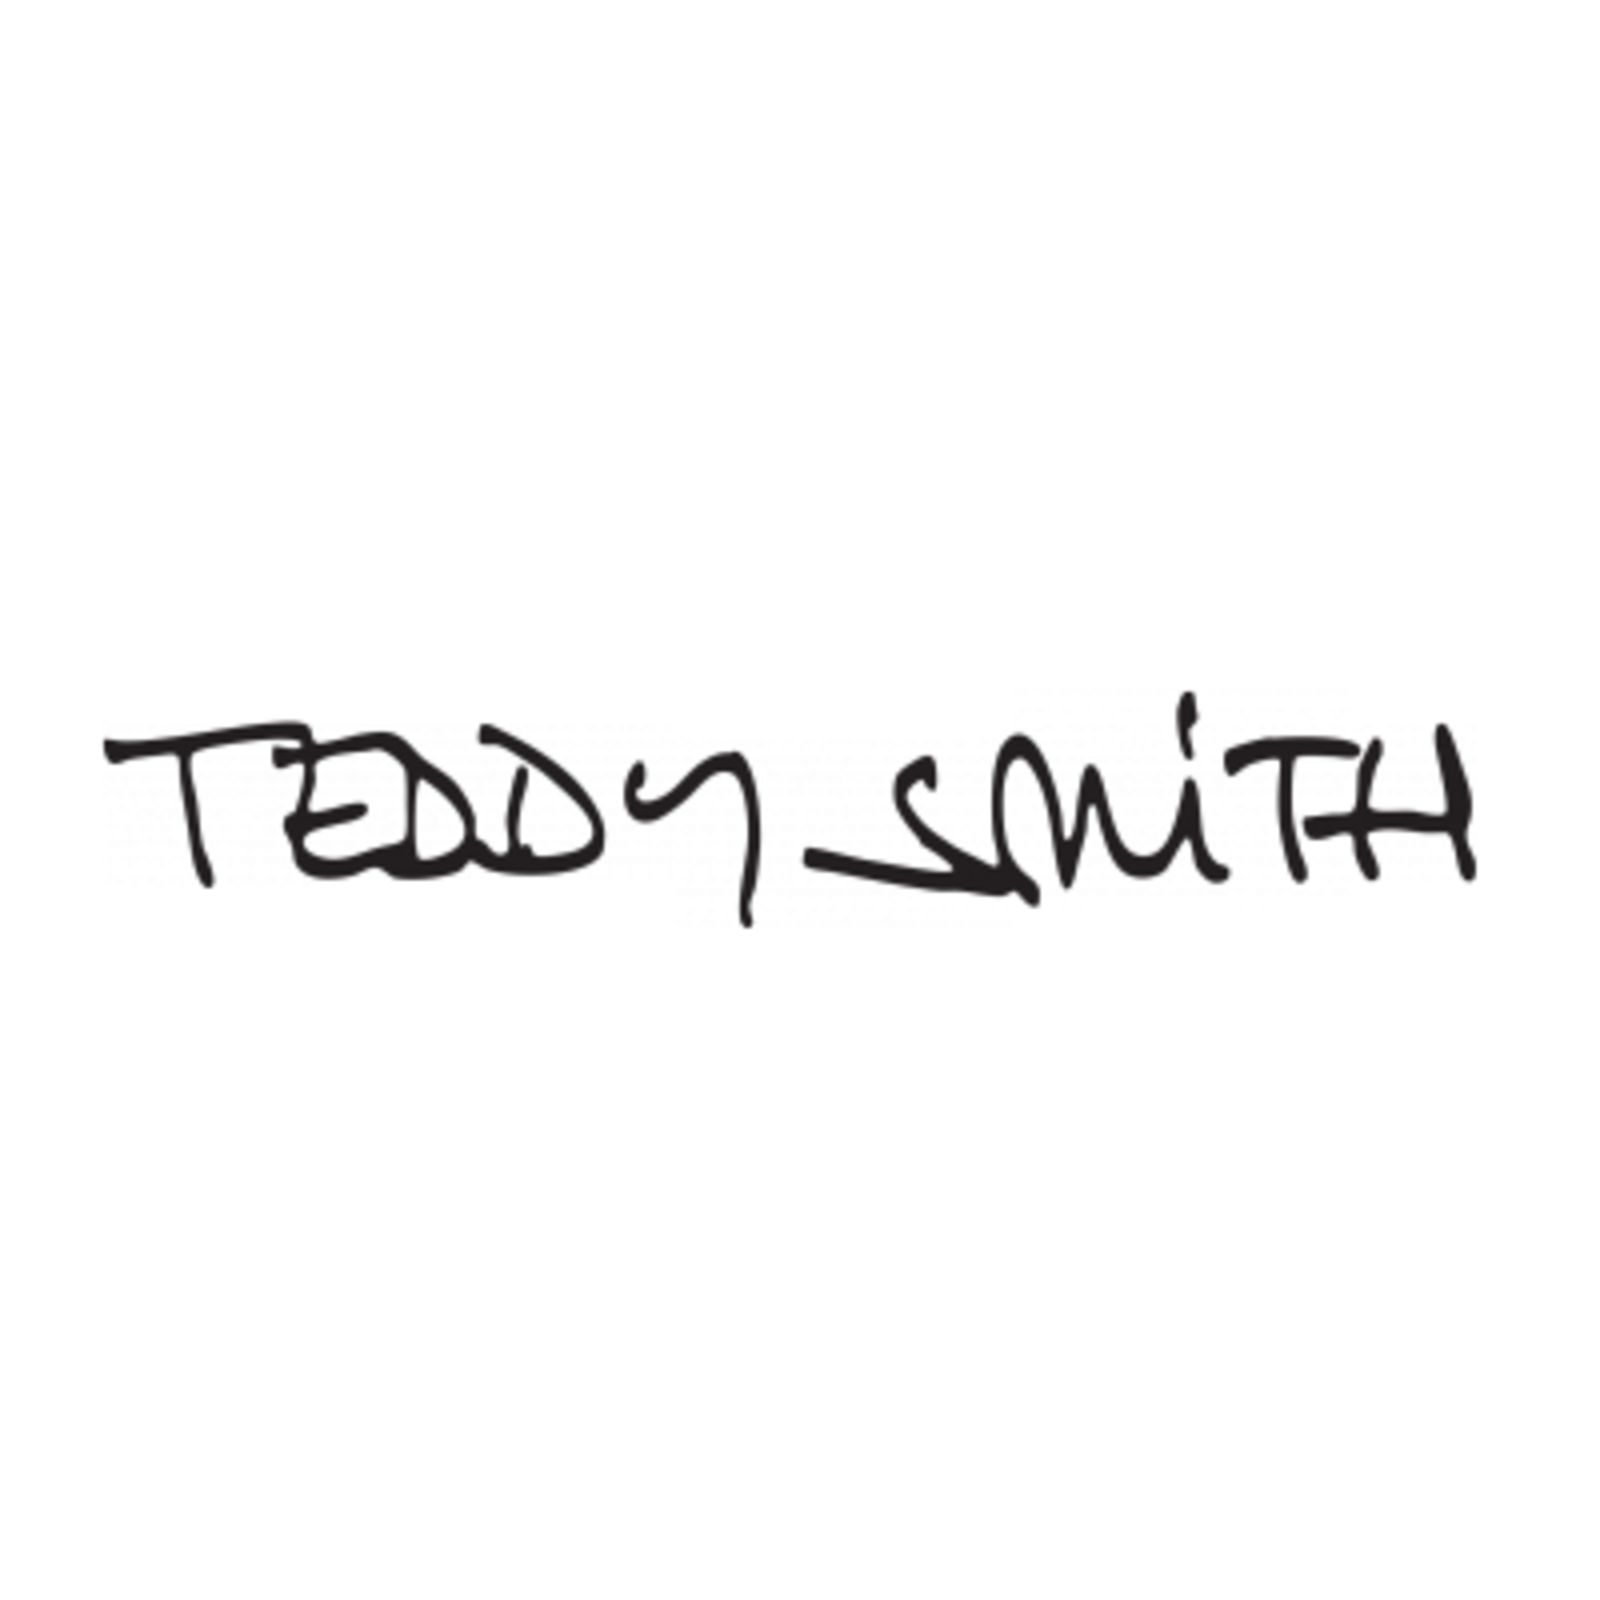 TEDDY SMITH